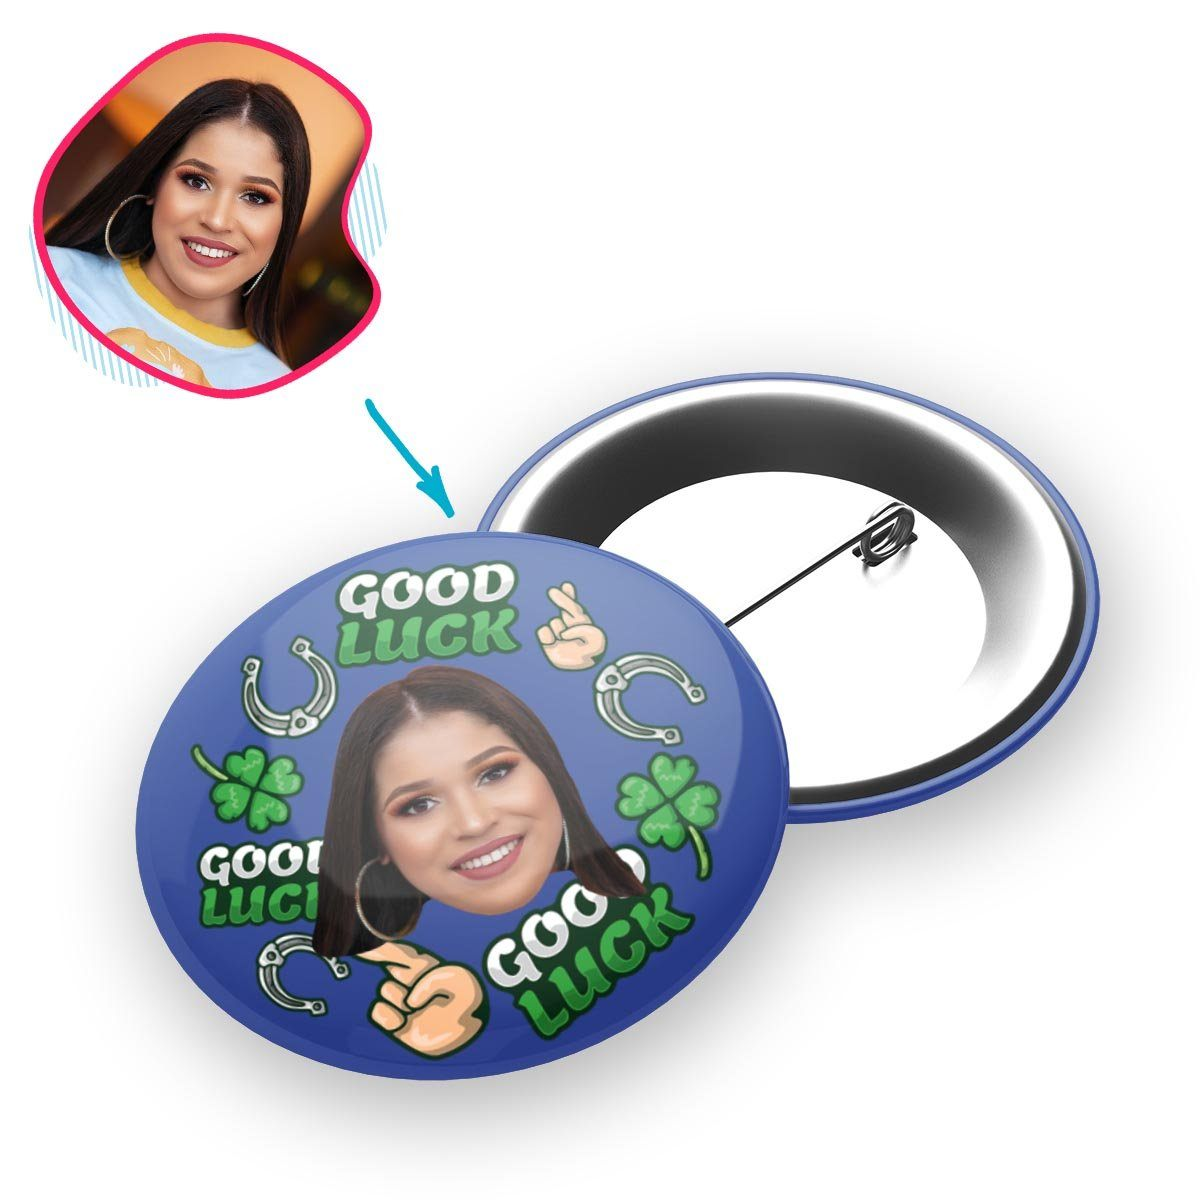 Darkblue Good Luck personalized pin with photo of face printed on it